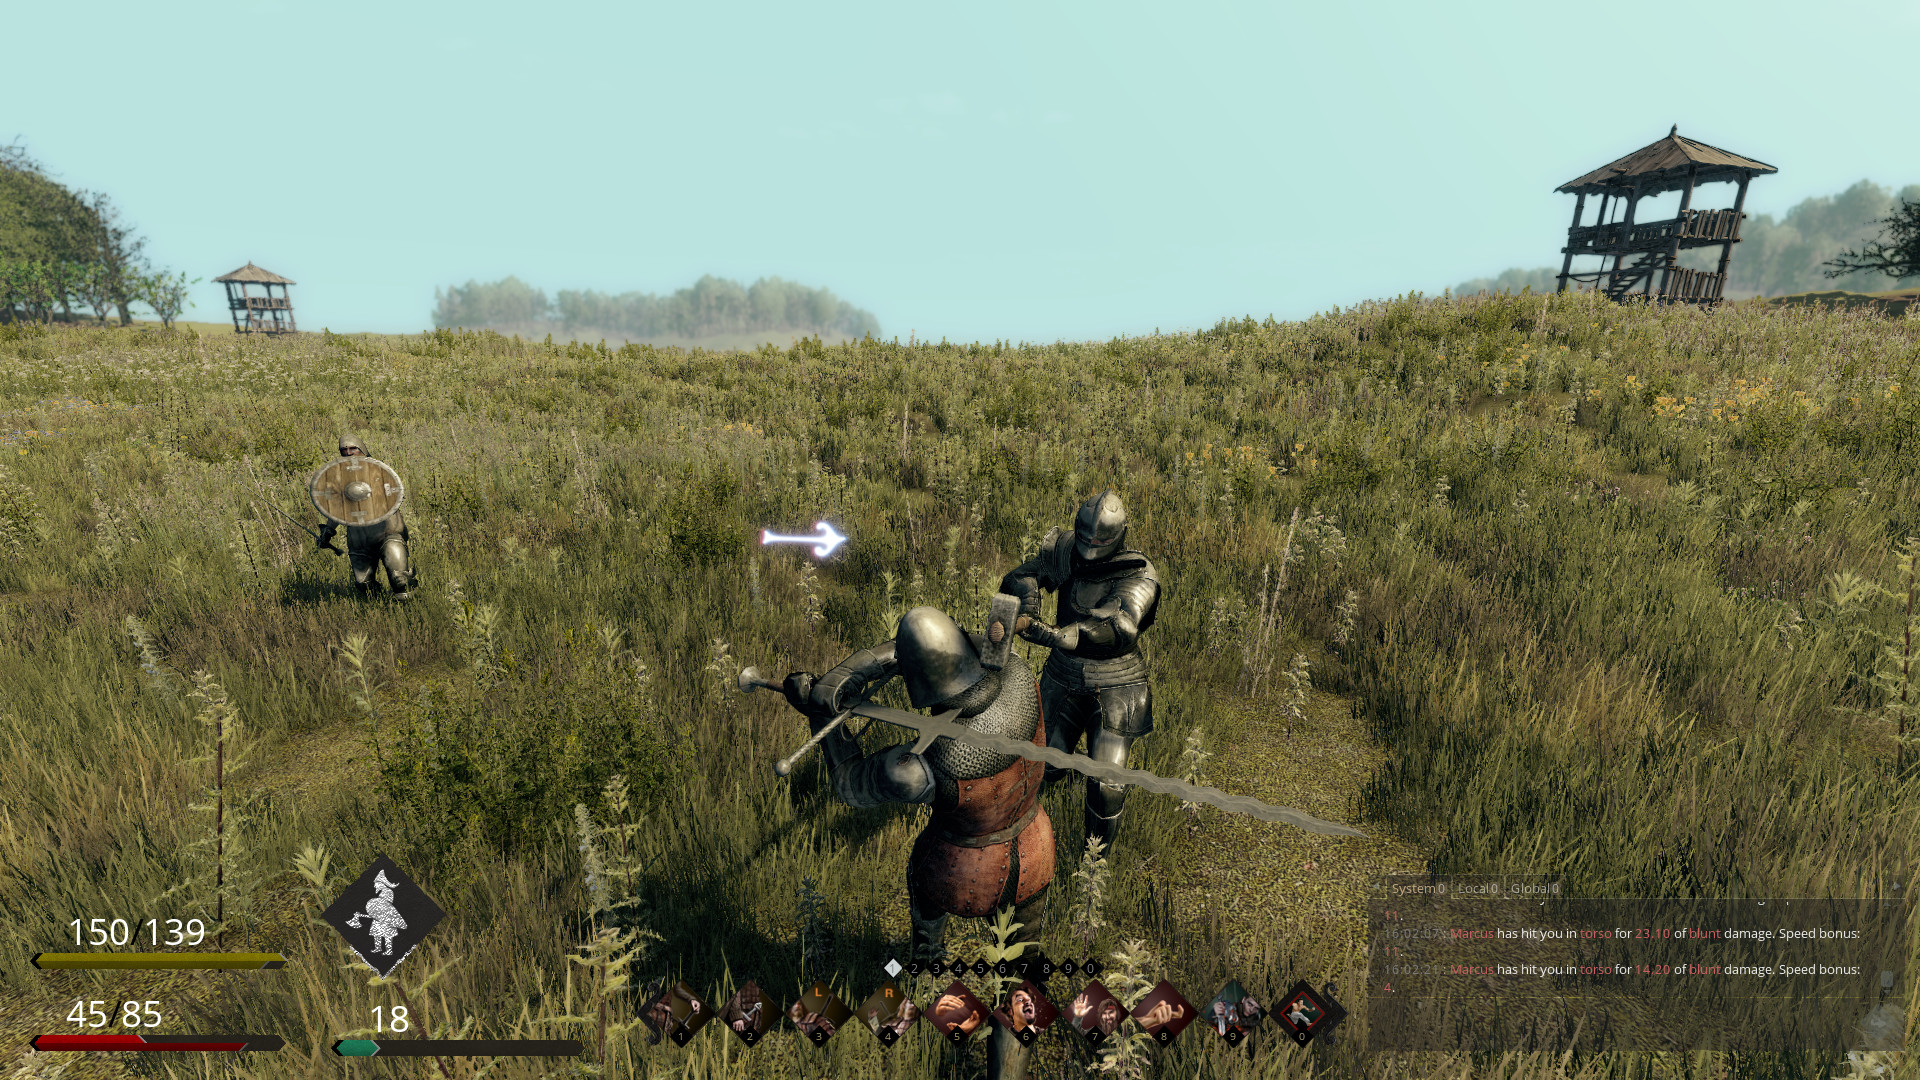 Life is feudal mmo fr купить life is feudal your own 2-pack что это значит